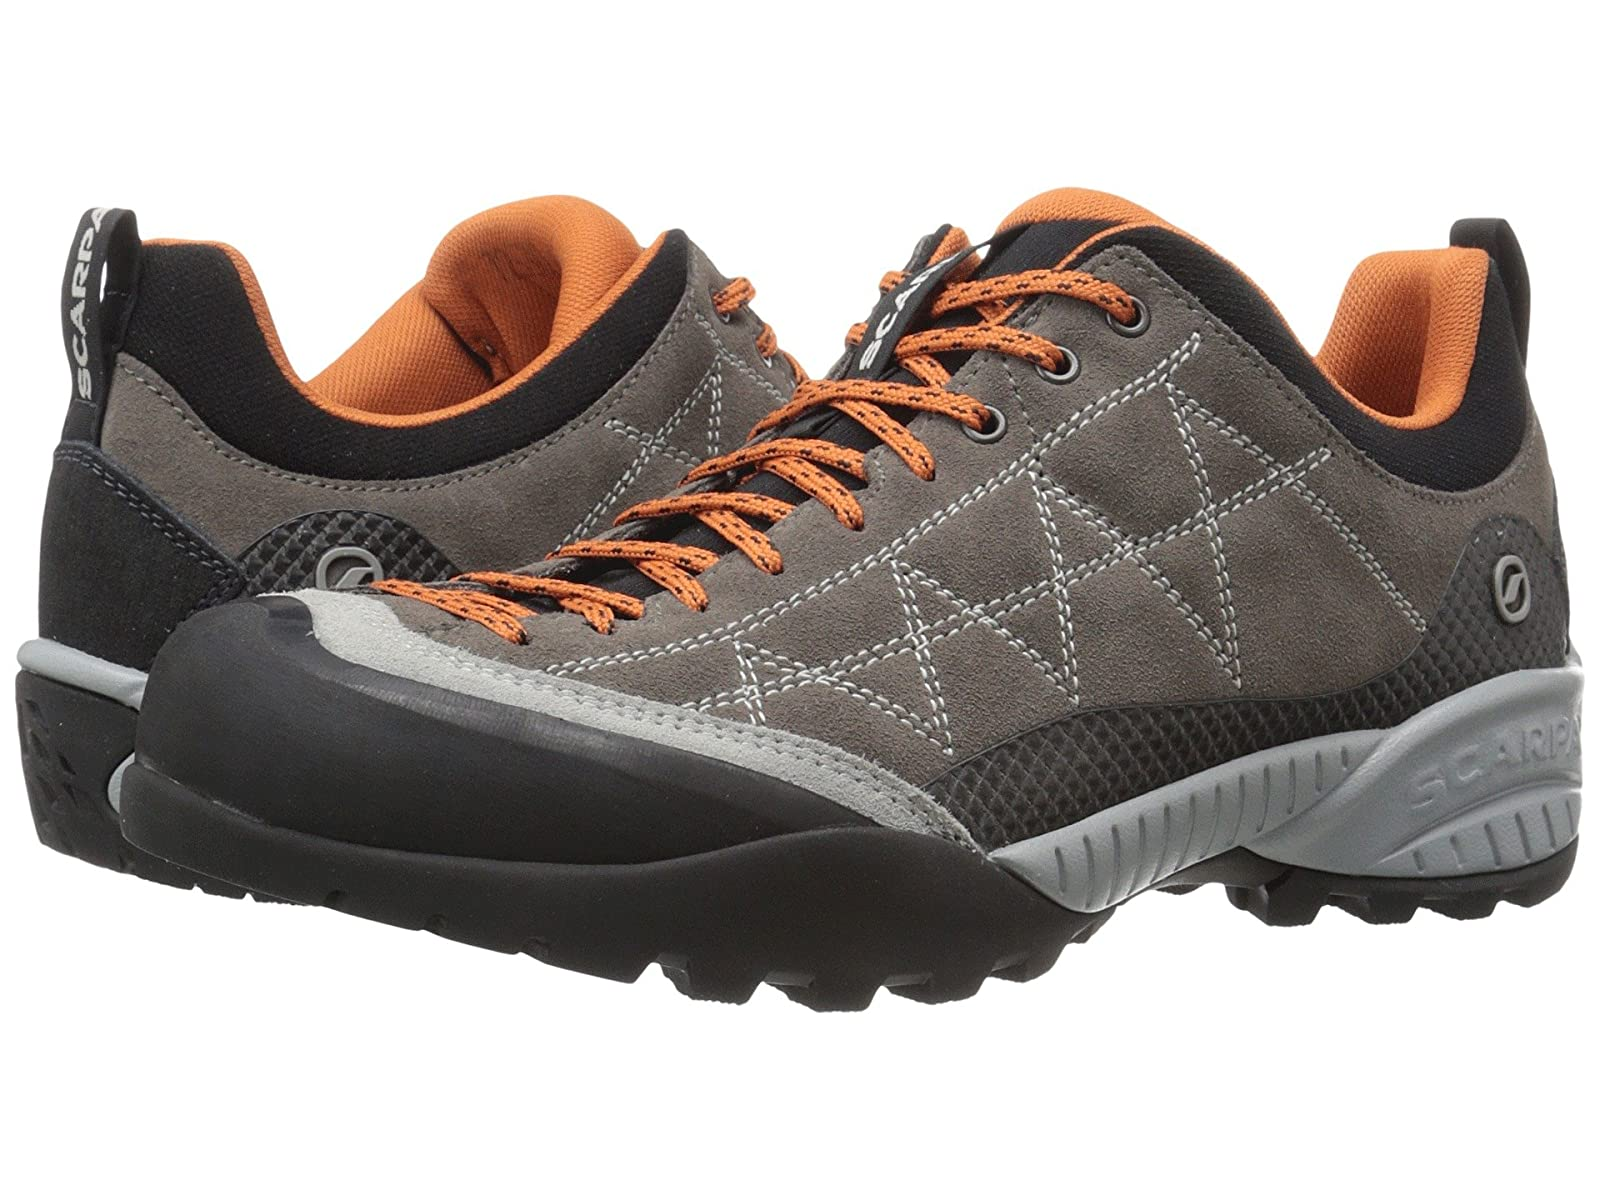 Scarpa Zen ProAtmospheric grades have affordable shoes